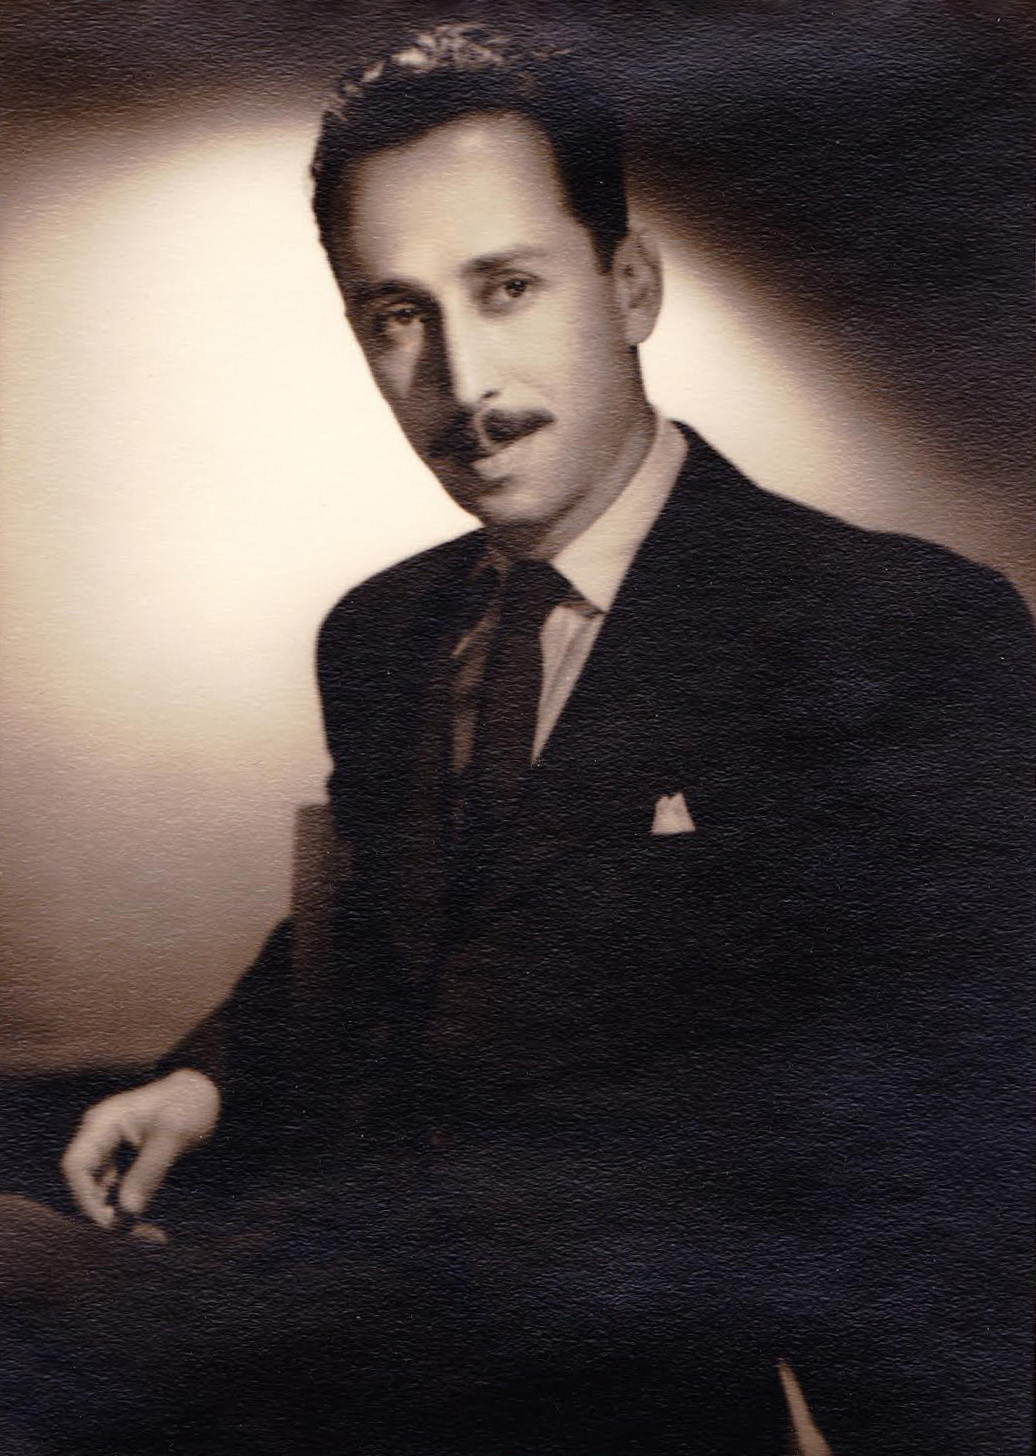 The photo is of mystery writer JOHN ROEBURT (my dad). You have him on your website for Inner Sanctum, Barry Craig, and other radio shows he wrote for (including the Shadow). He  won the Edgar Allen Poe Award for (given by the mystery writers of America, MWA) in 1948 for Inner Sanctum. He also wrote novels and film. I just noticed the pictures included on those web pages left my dad's photo blank. So here's a photo of John Roeburt.